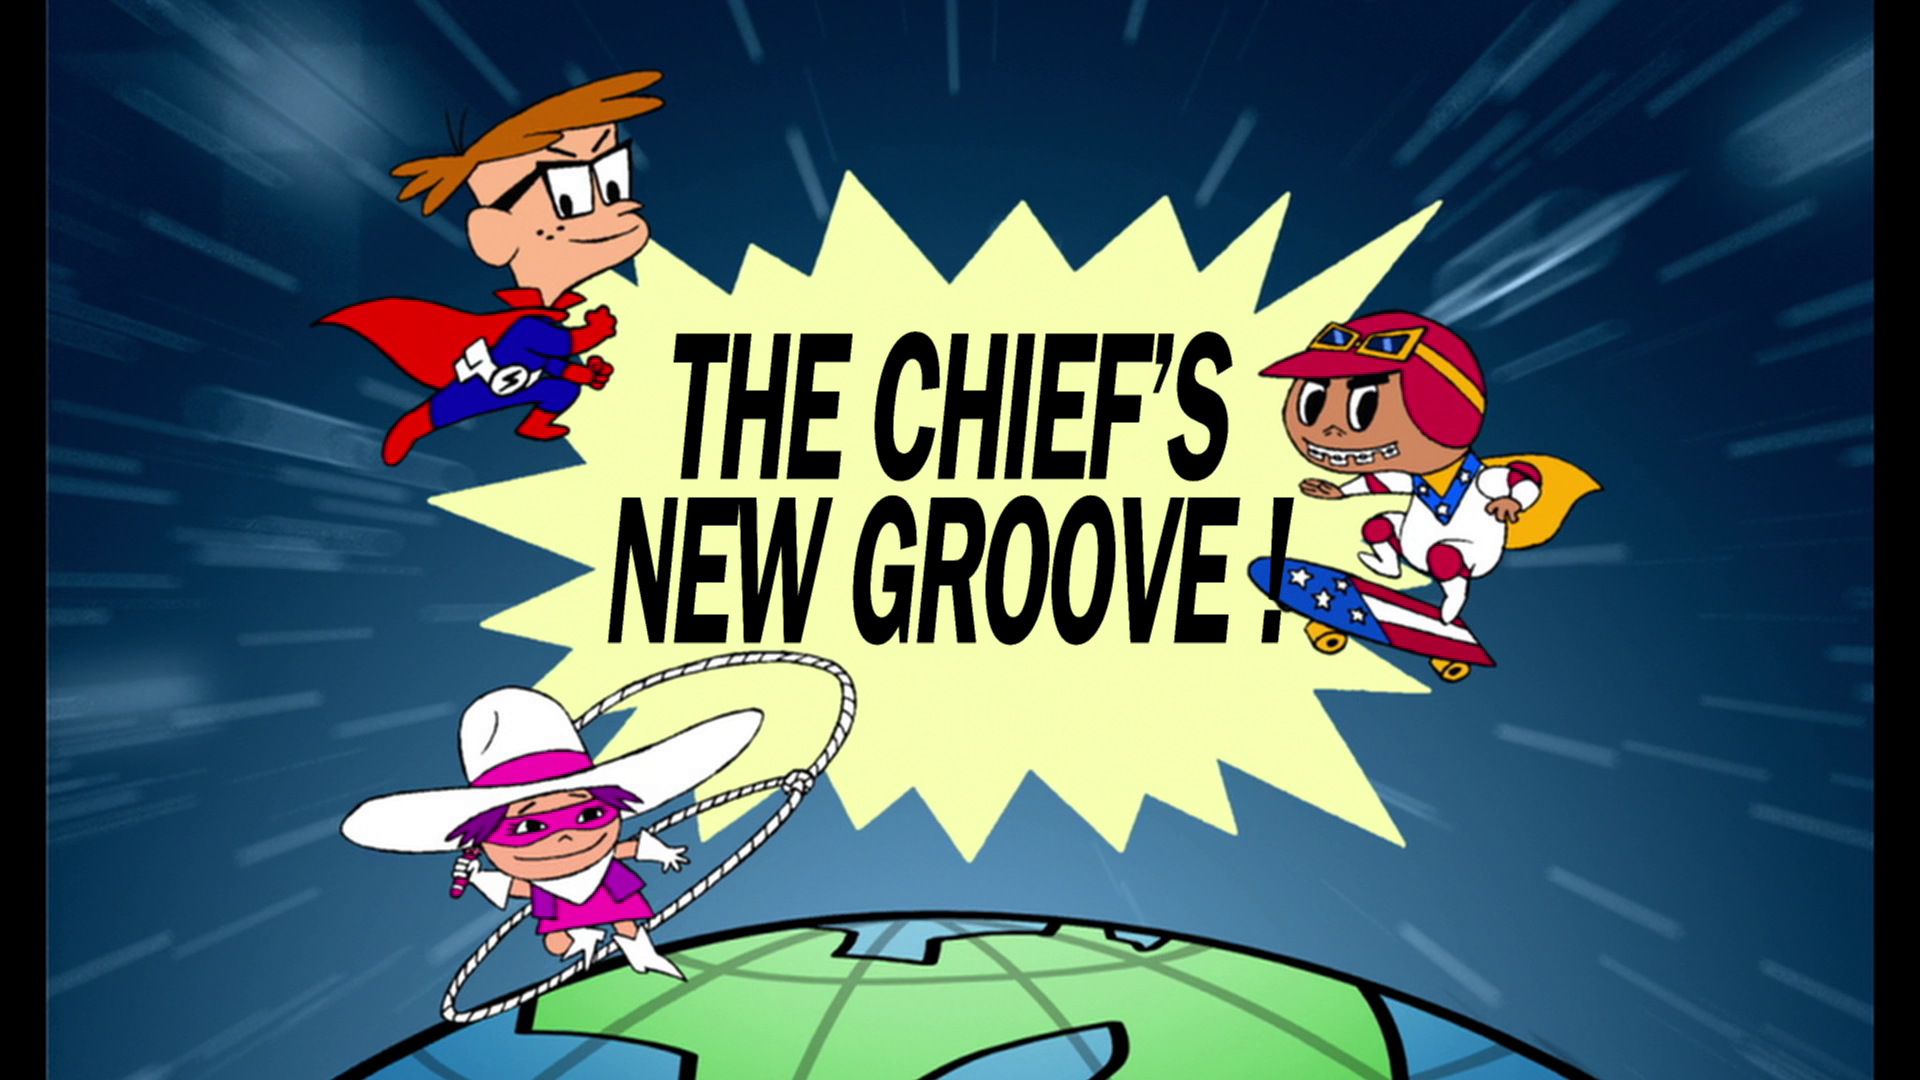 The Chief's New Groove!